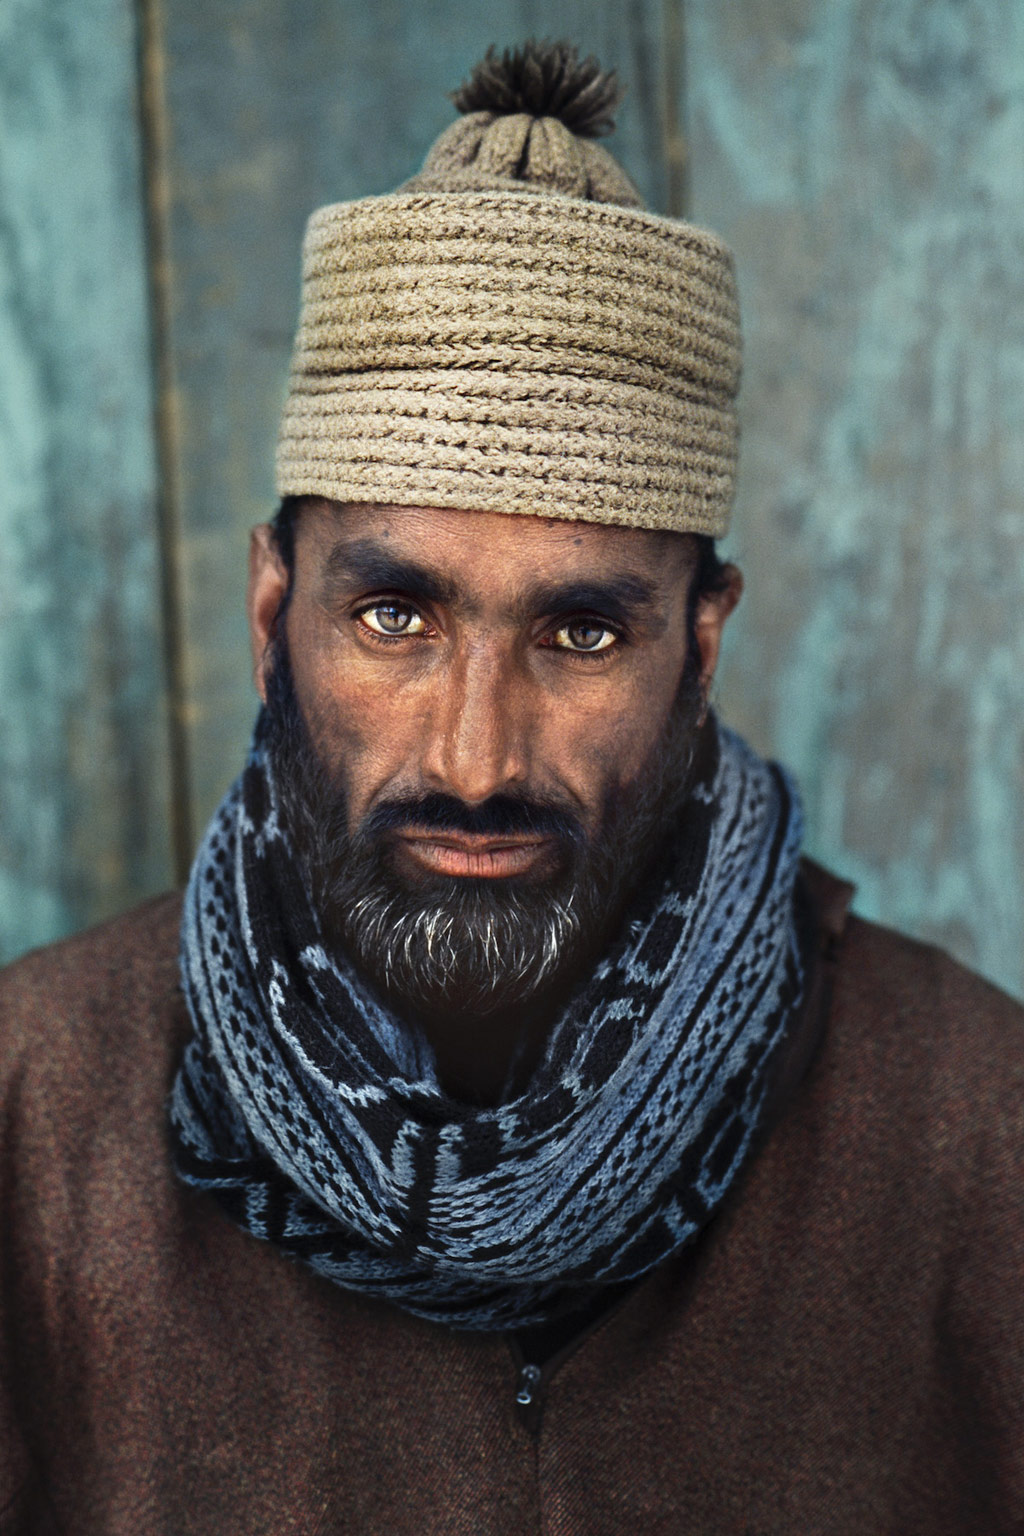 portrait photography man by steve mccurry